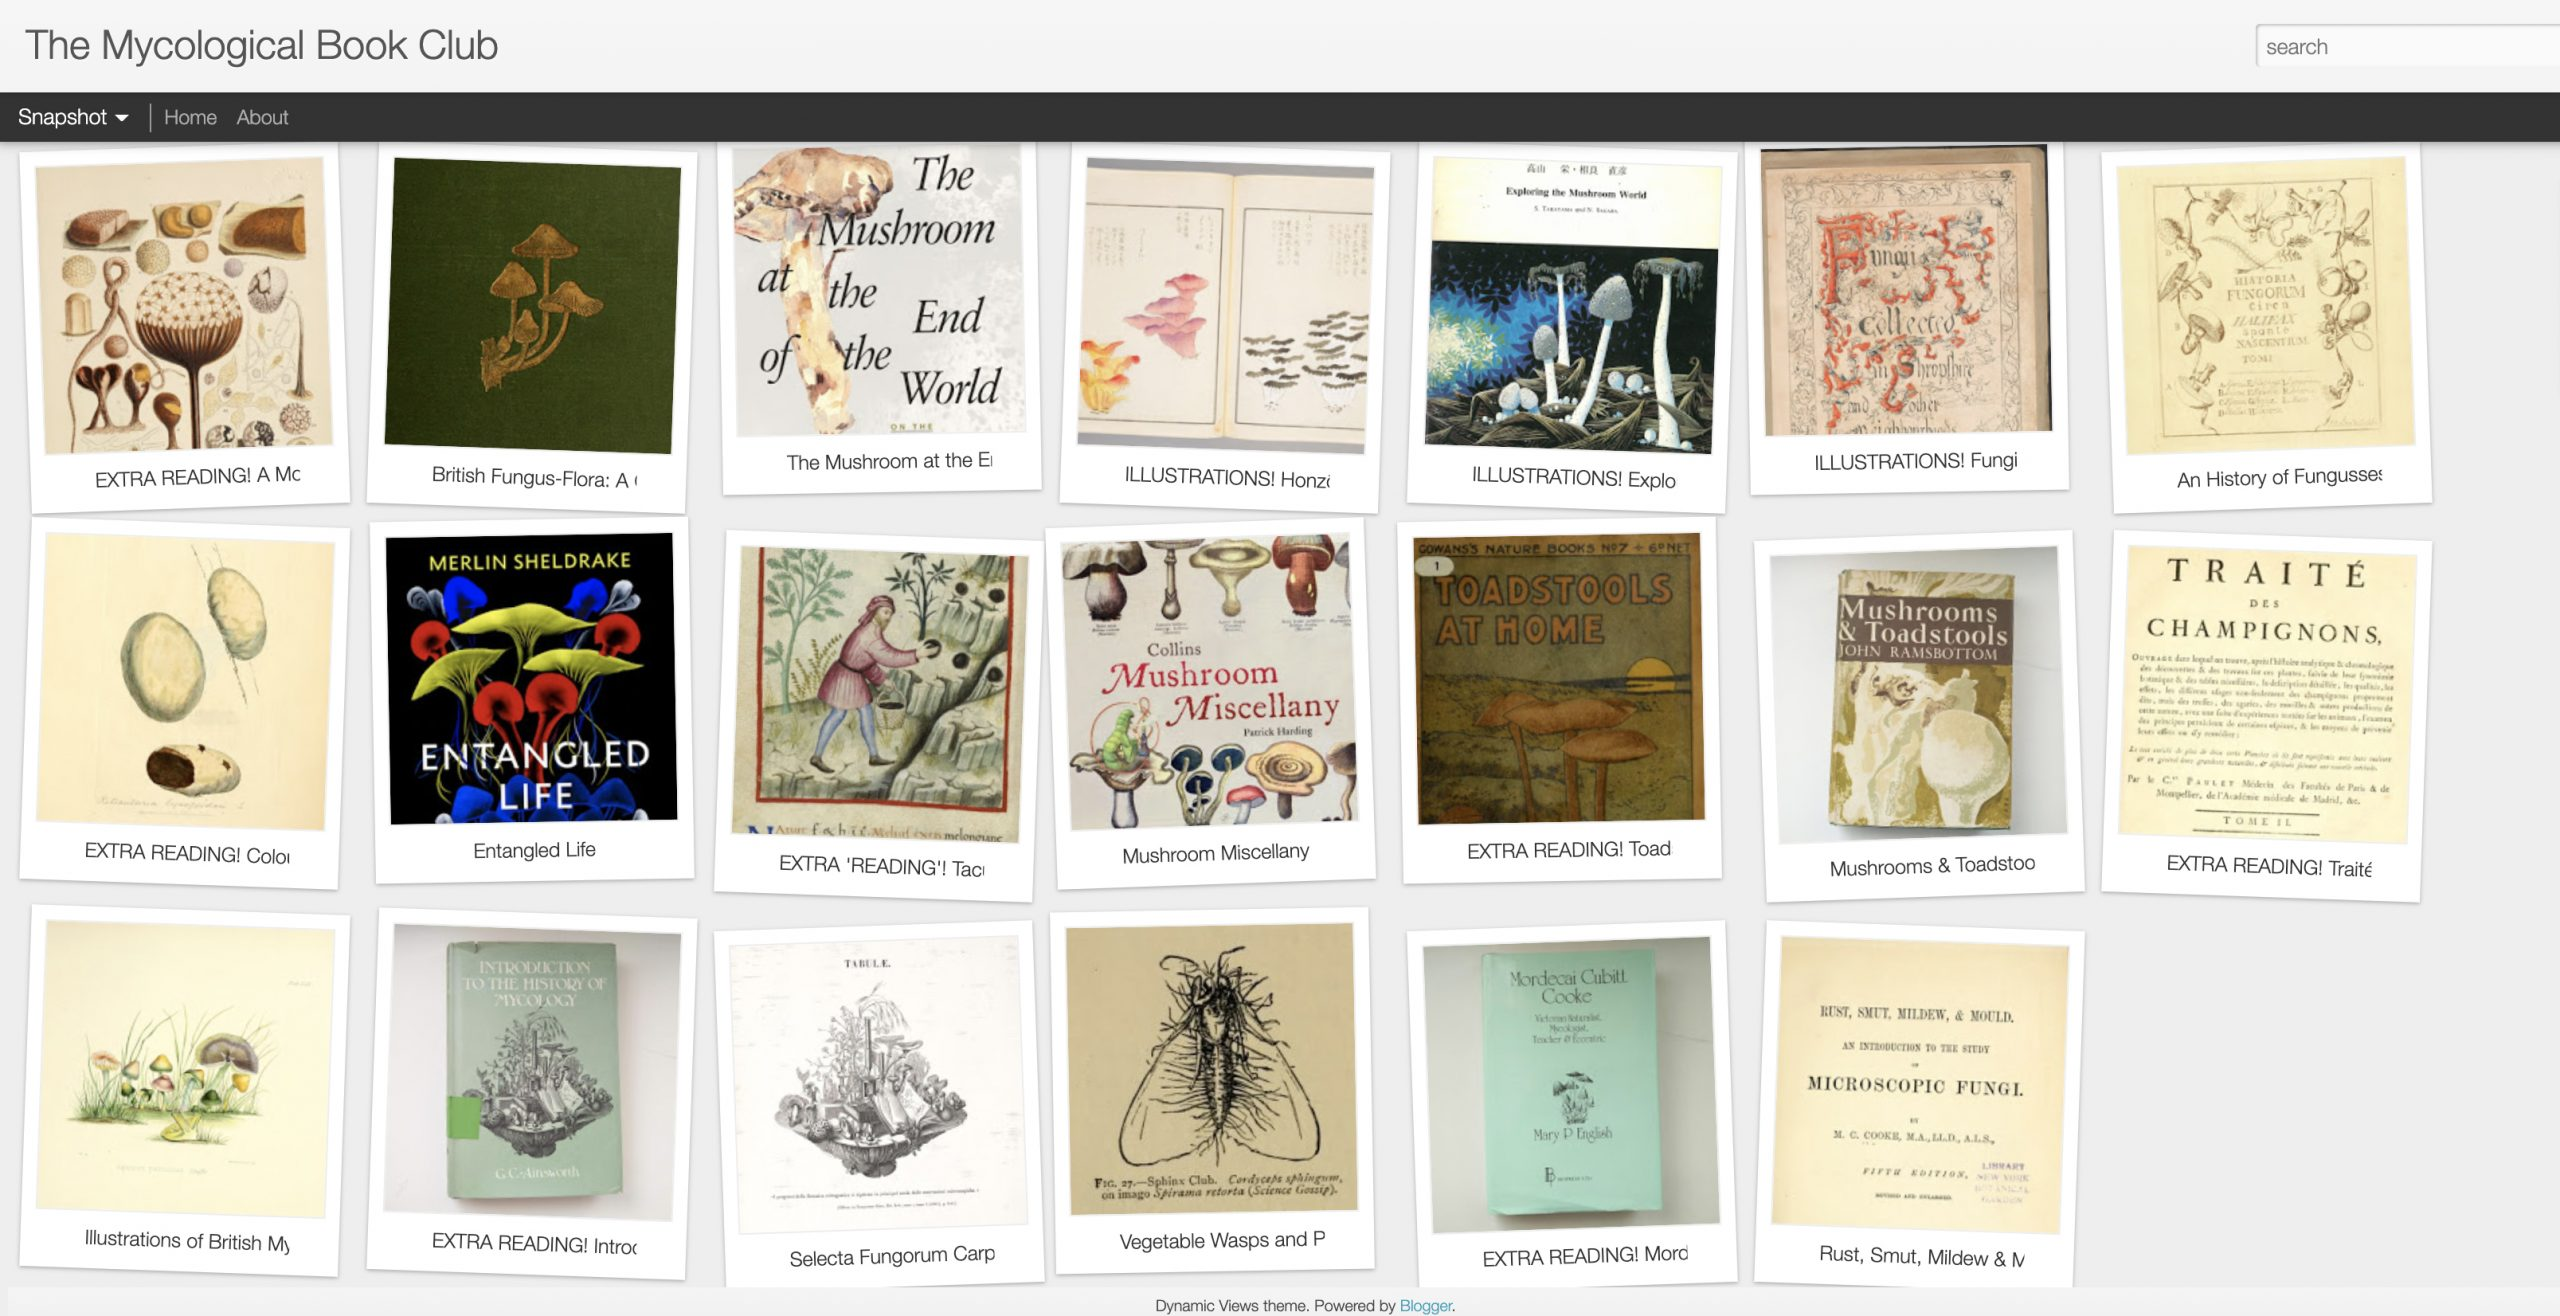 Screenshot of a virtual bookshelf with thumbnails of book covers.